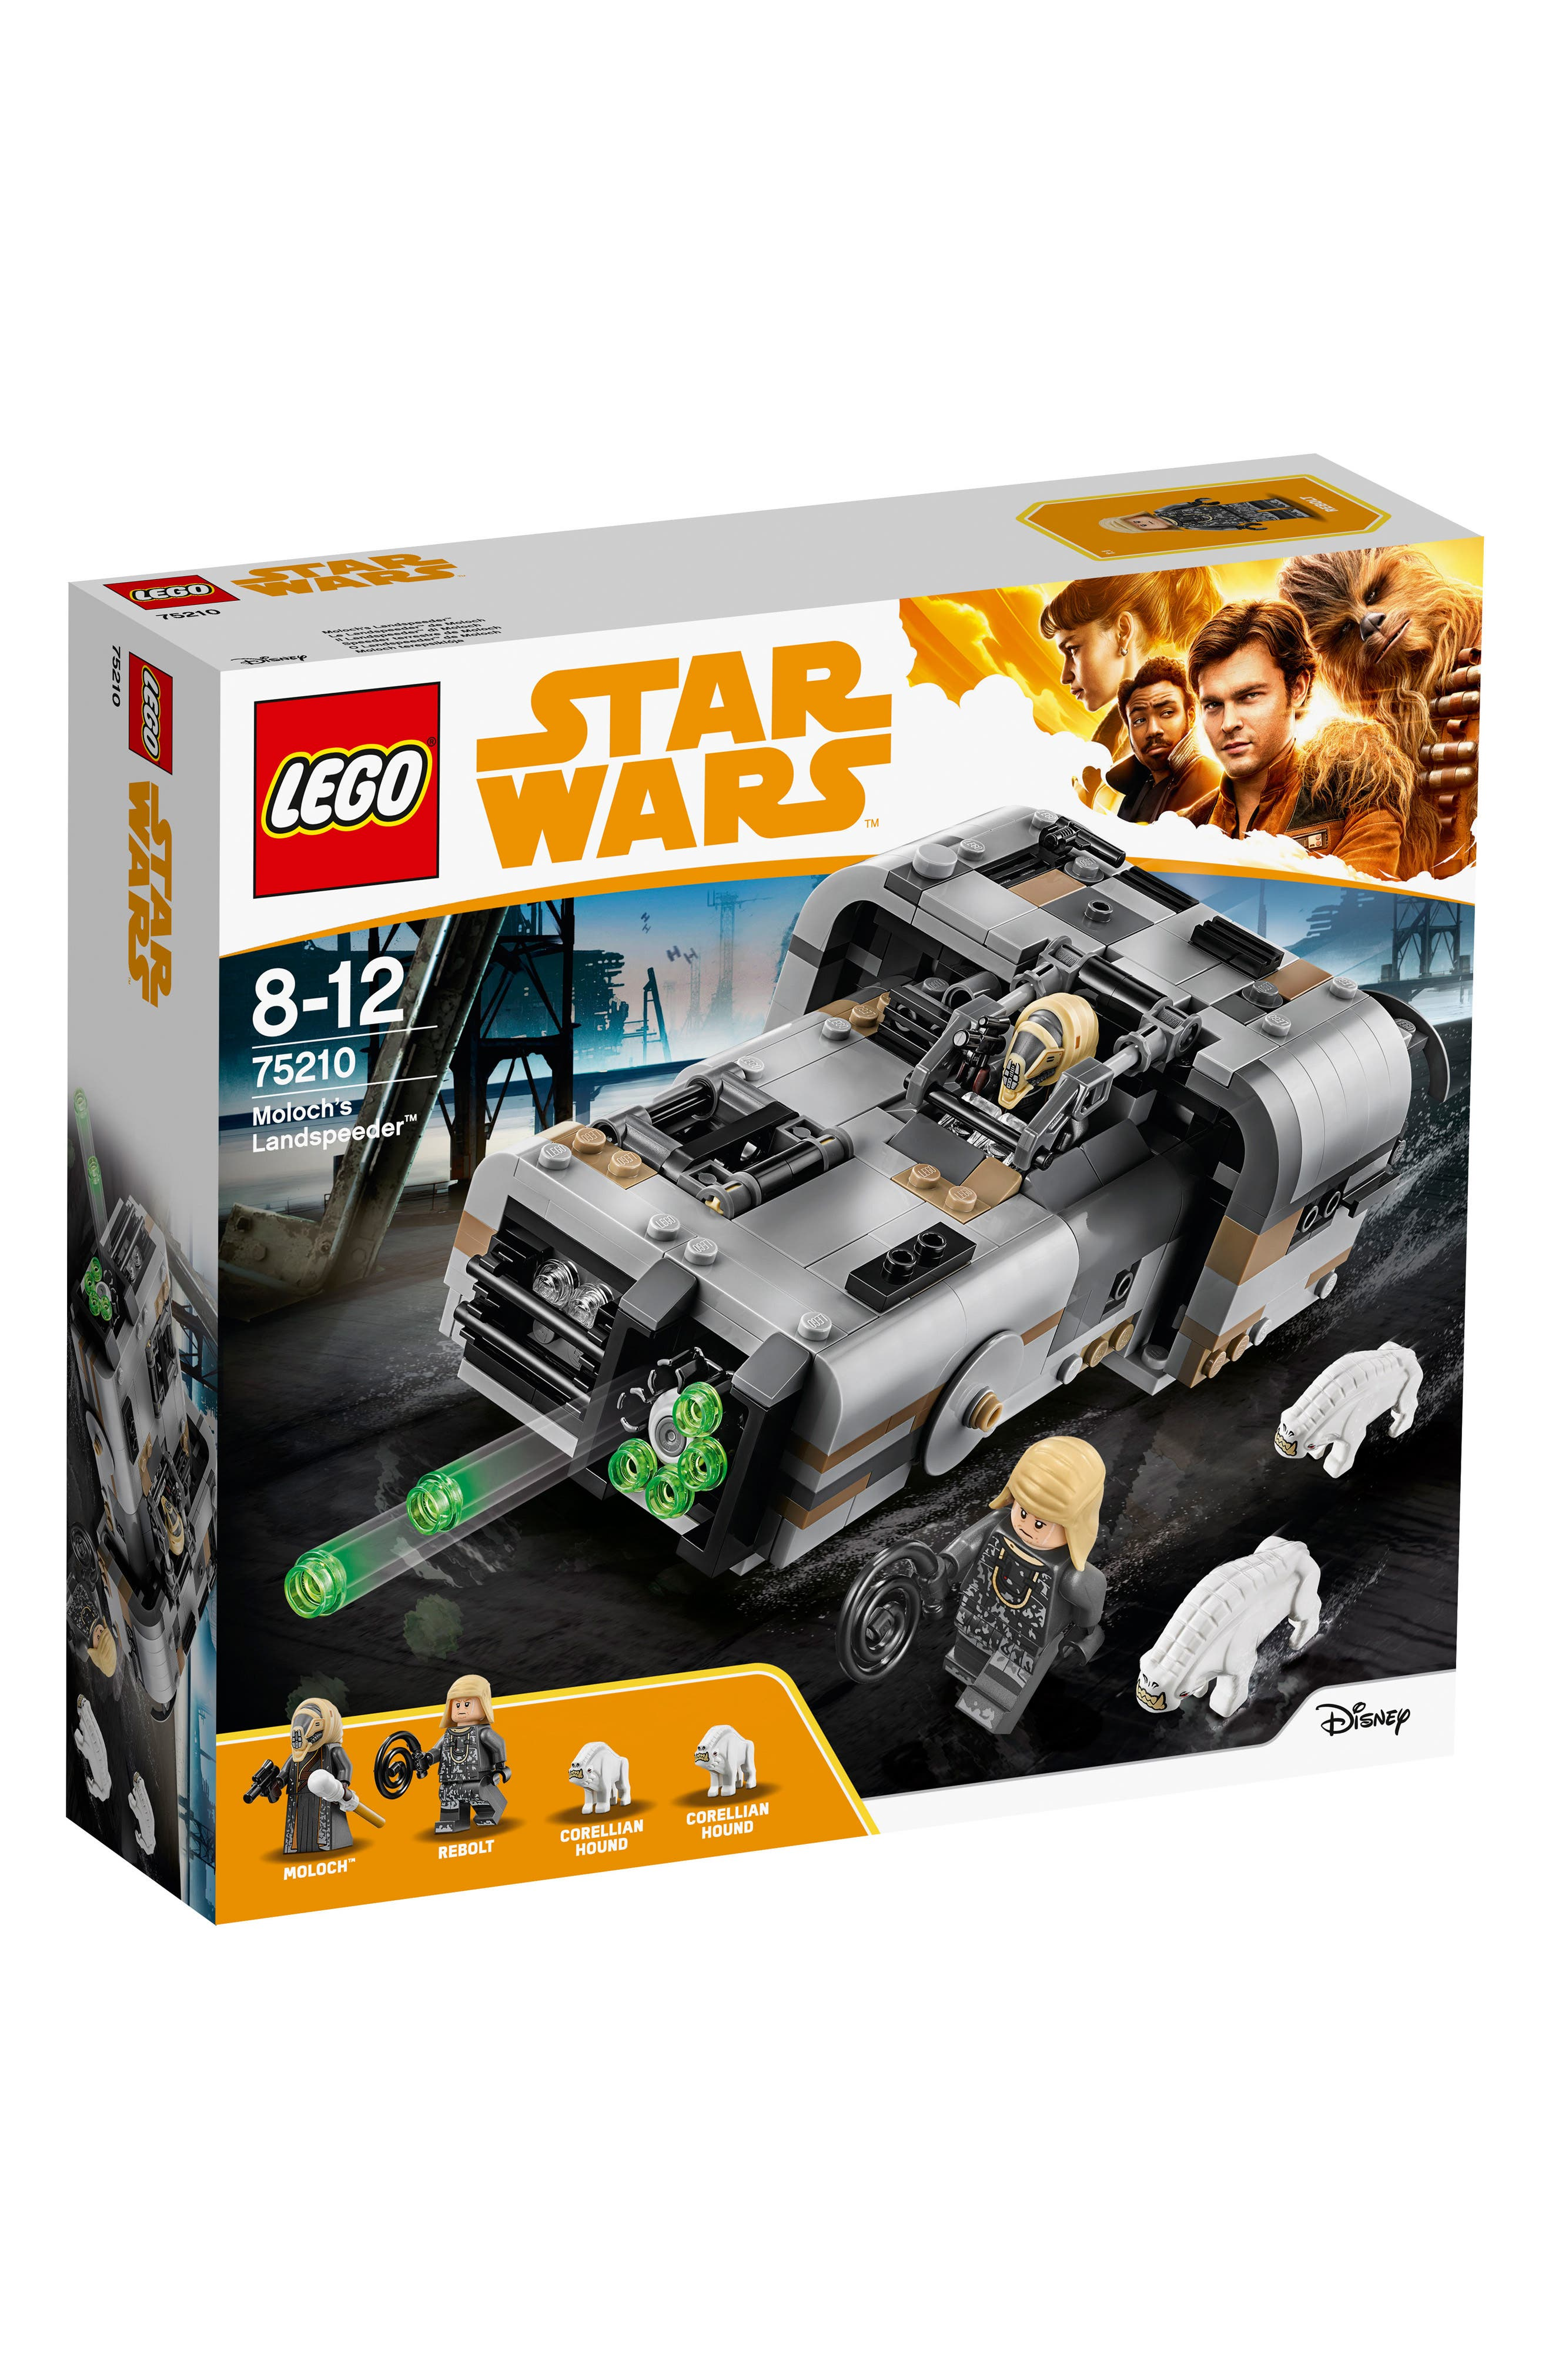 Star Wars<sup>®</sup> Moloch's Landspeeder<sup>™</sup> - 75210,                             Main thumbnail 1, color,                             020